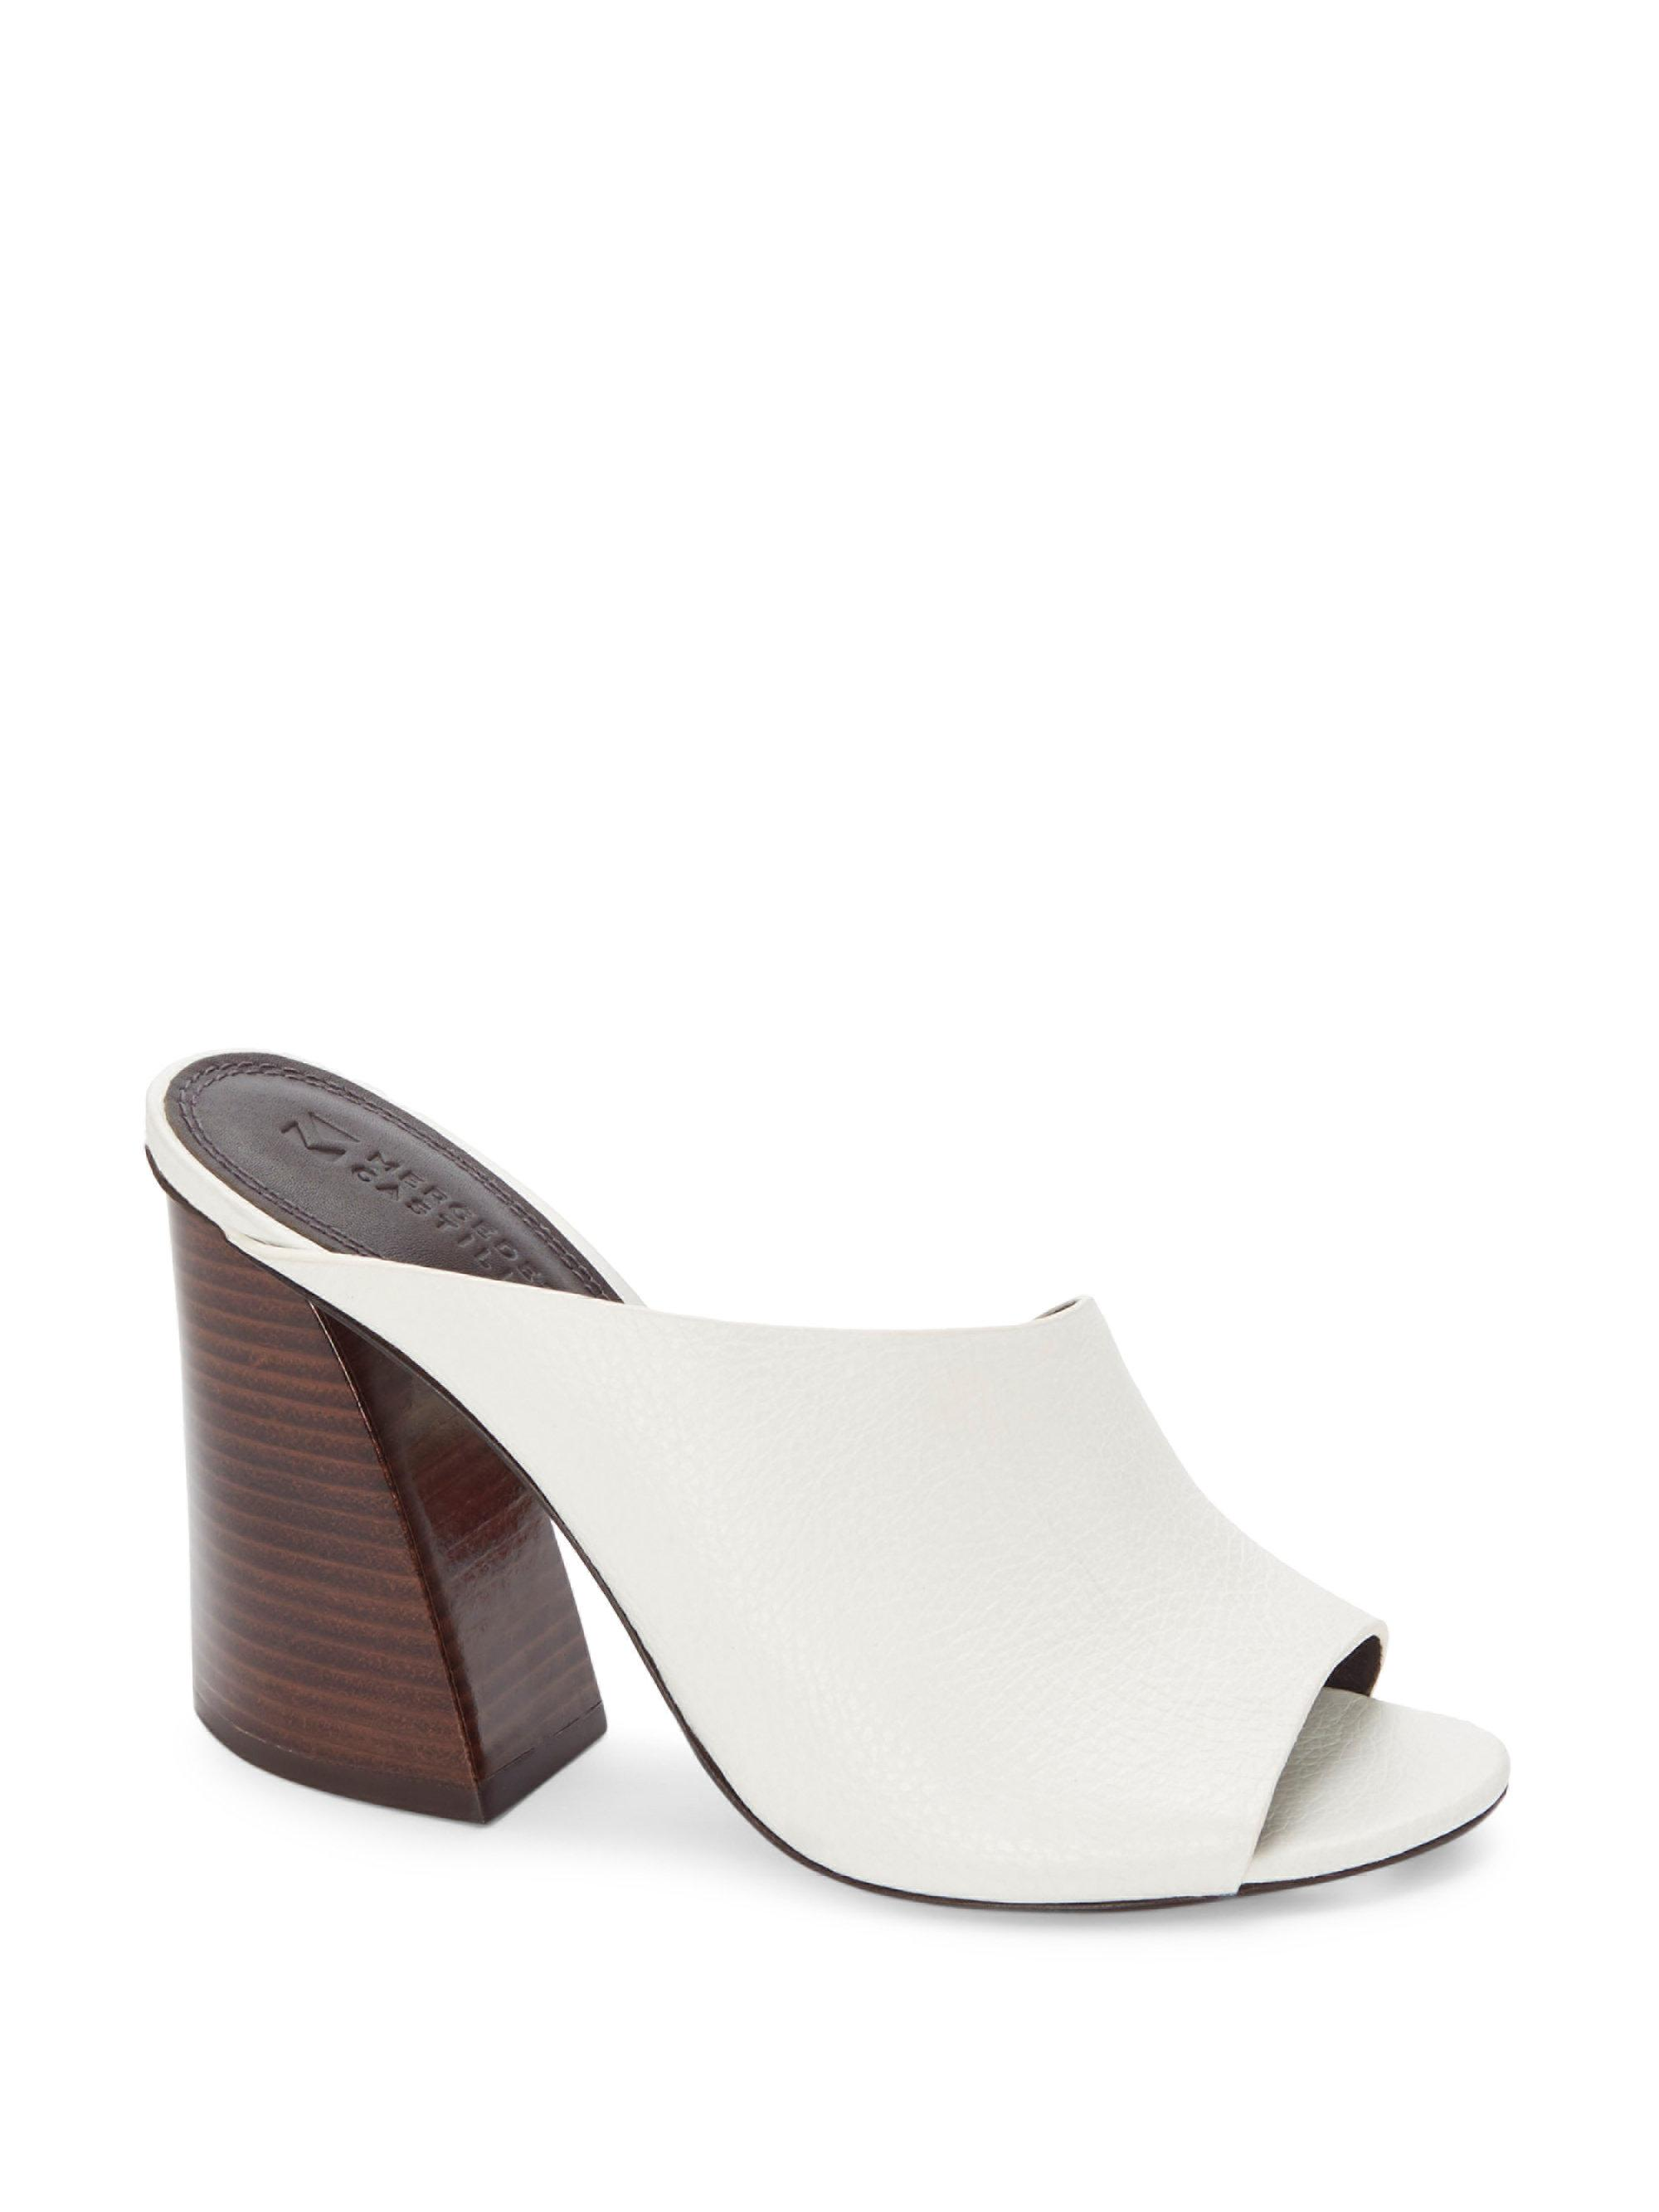 Mercedes Castillo Stacked Heel Leather Mules